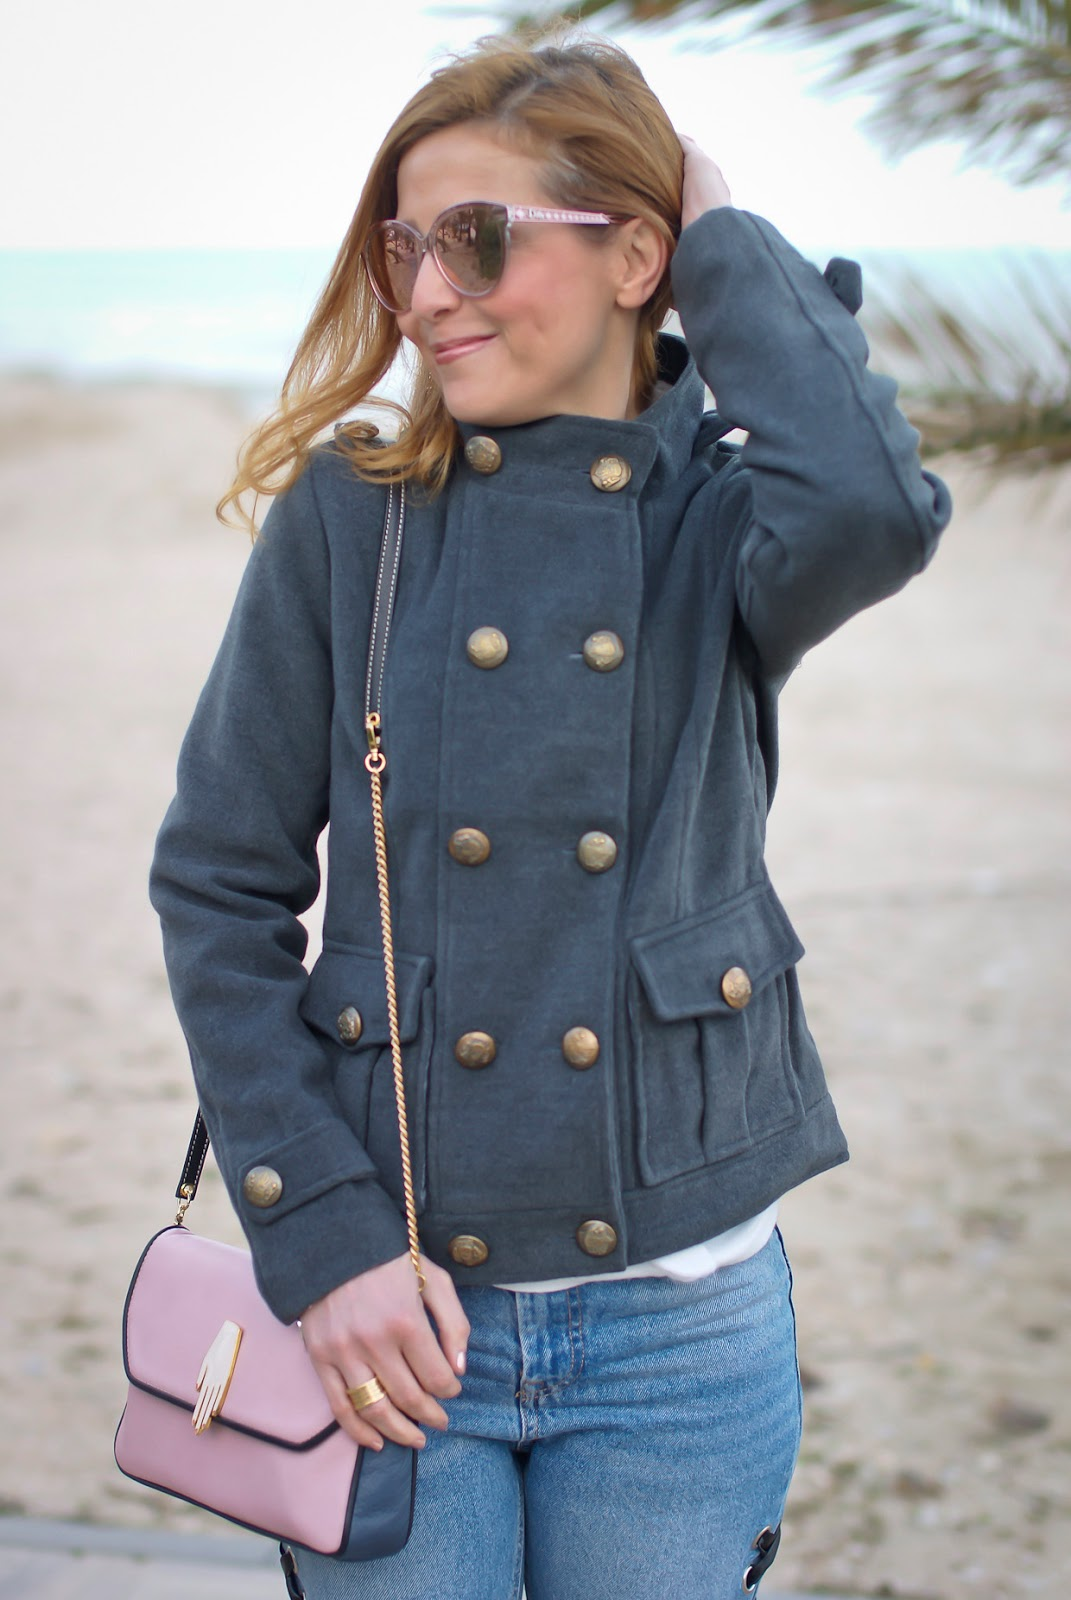 Eyelet jeans and Dresslink grey military jacket on Fashion and Cookies fashion blog, fashion blogger style